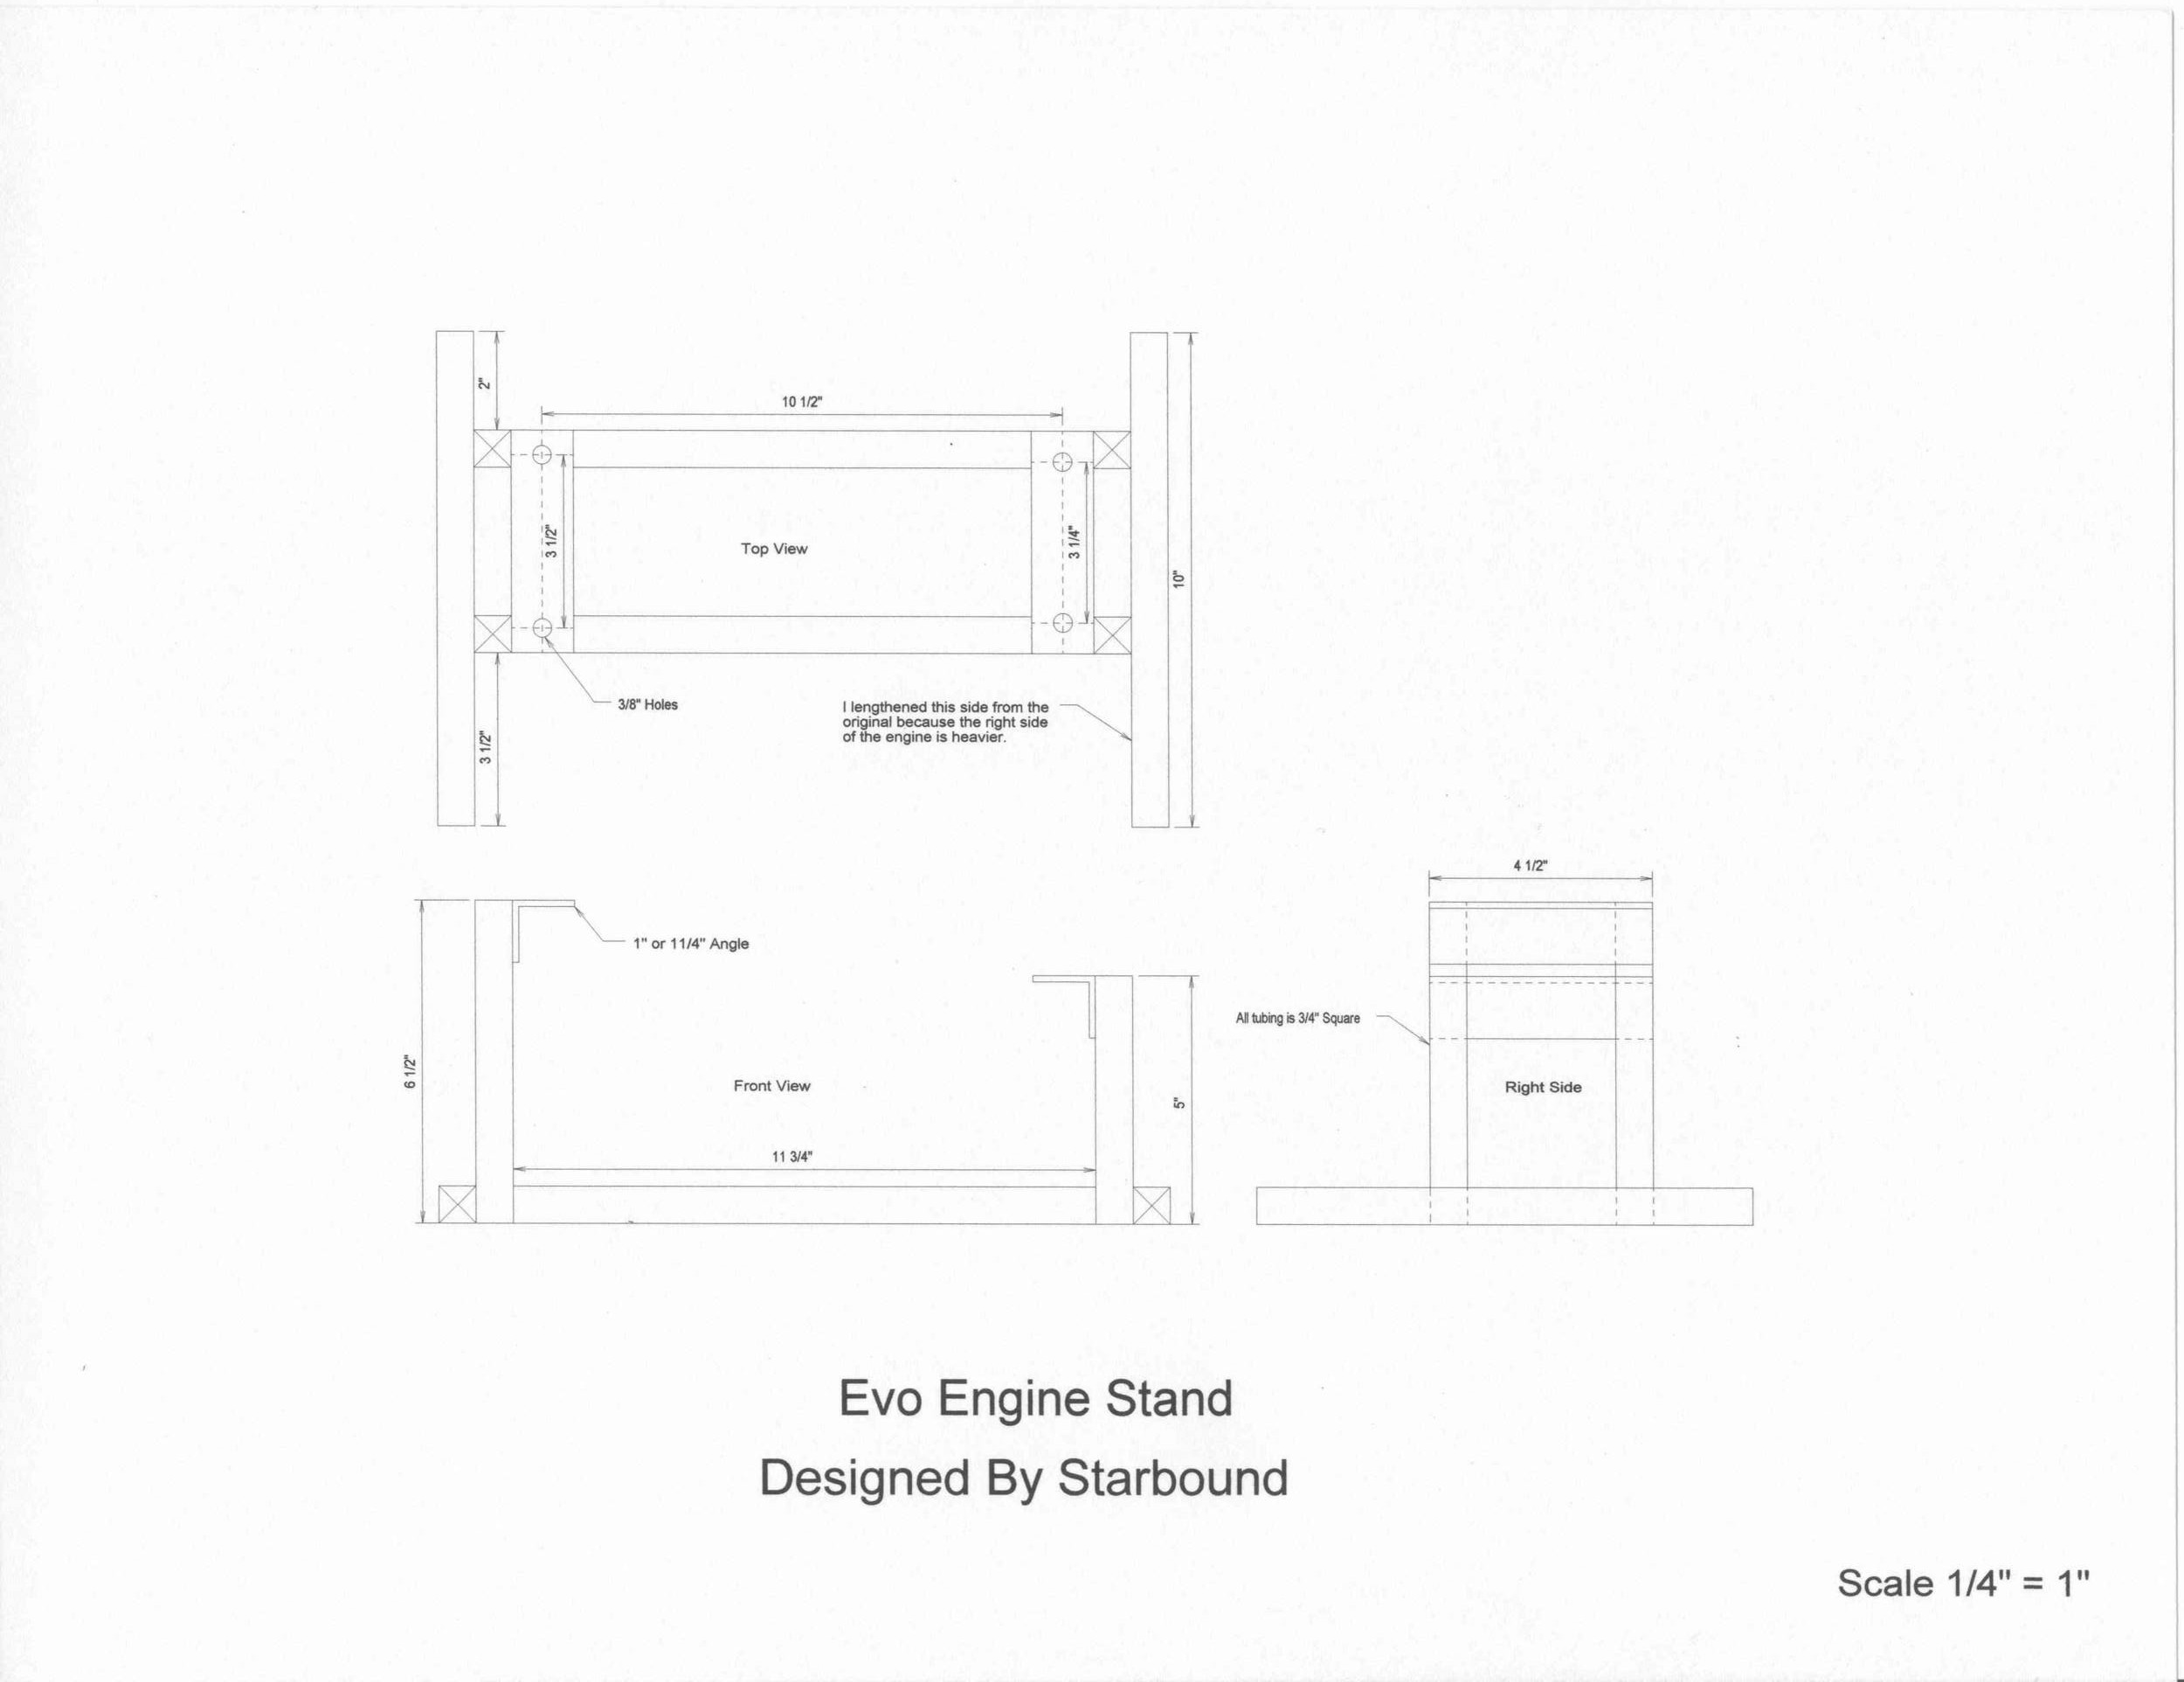 80 harley evolution engine diagram wiring diagramplans for a harley motor stand u2013 mustaribrandharley [ 2500 x 1925 Pixel ]